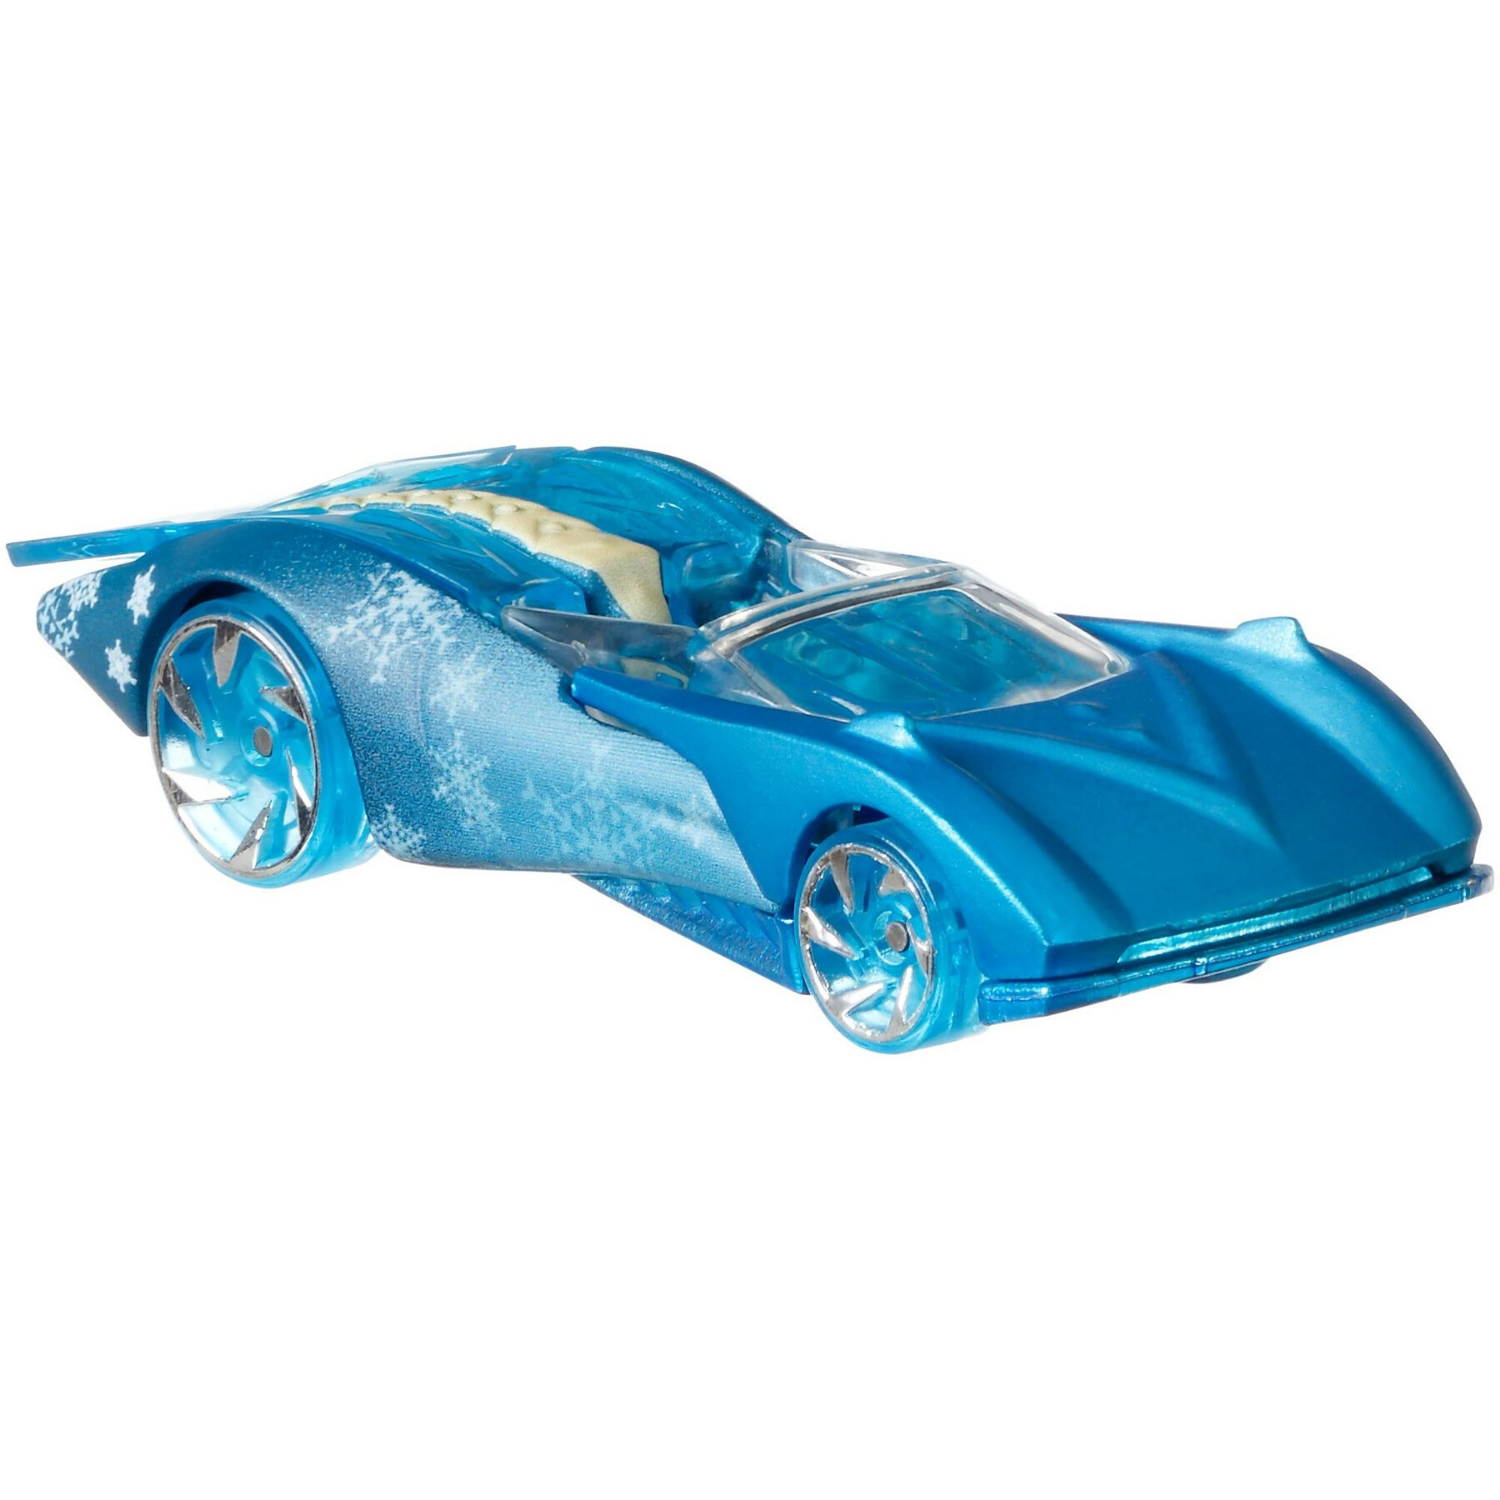 Disney Hot Wheels Character Cars 2019 | Elsa